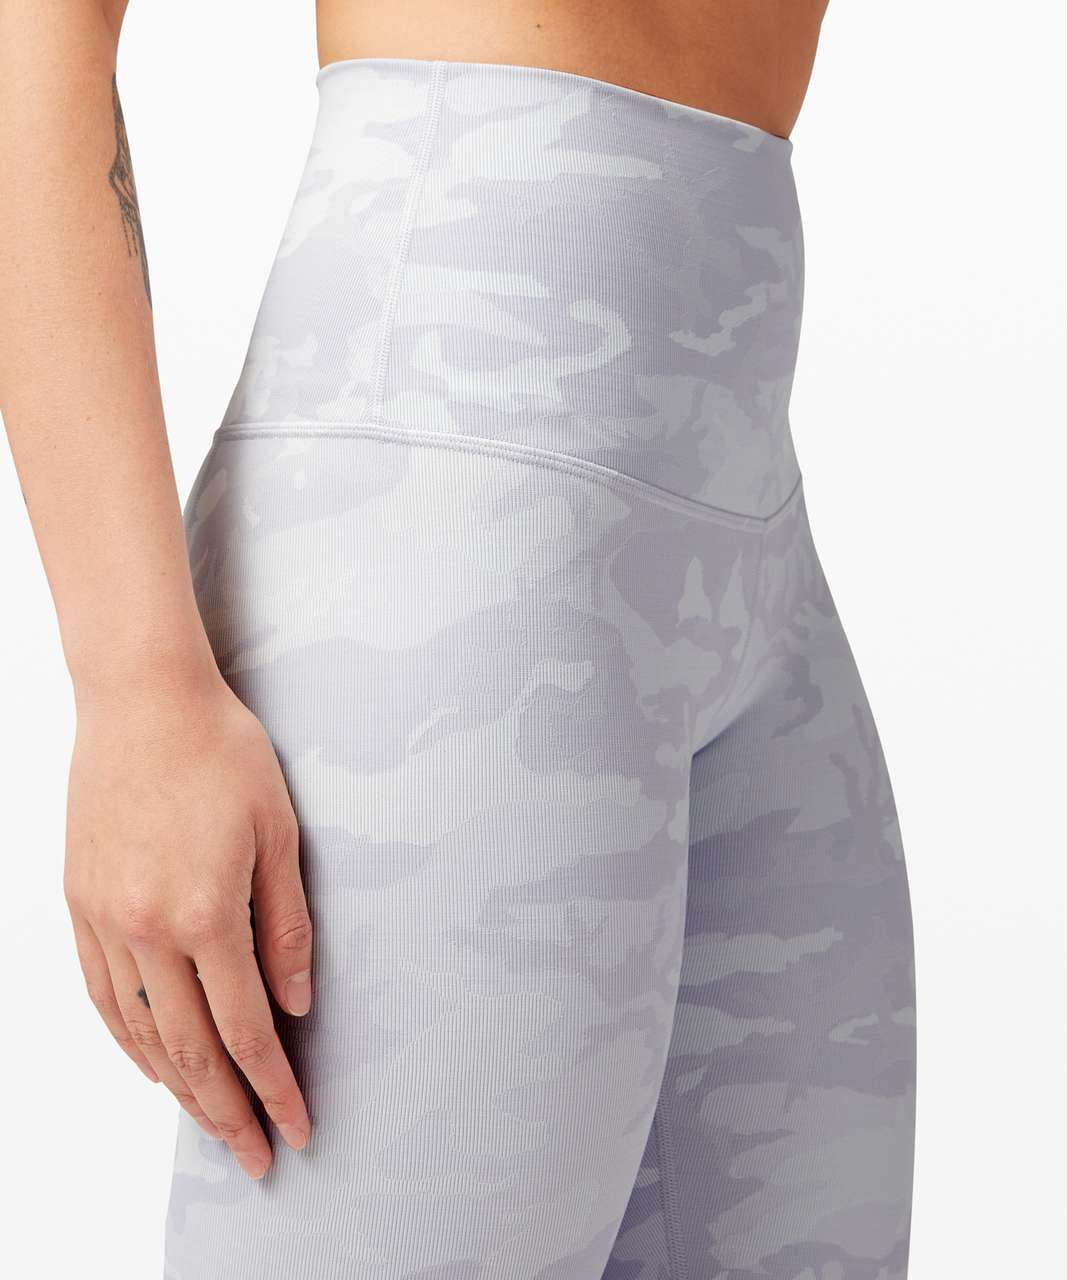 """Lululemon Wunder Under Crop High-Rise *Roll Down Scallop Full-On Luxtreme 23"""" - Incognito Camo Jacquard Alpine White Starlight"""